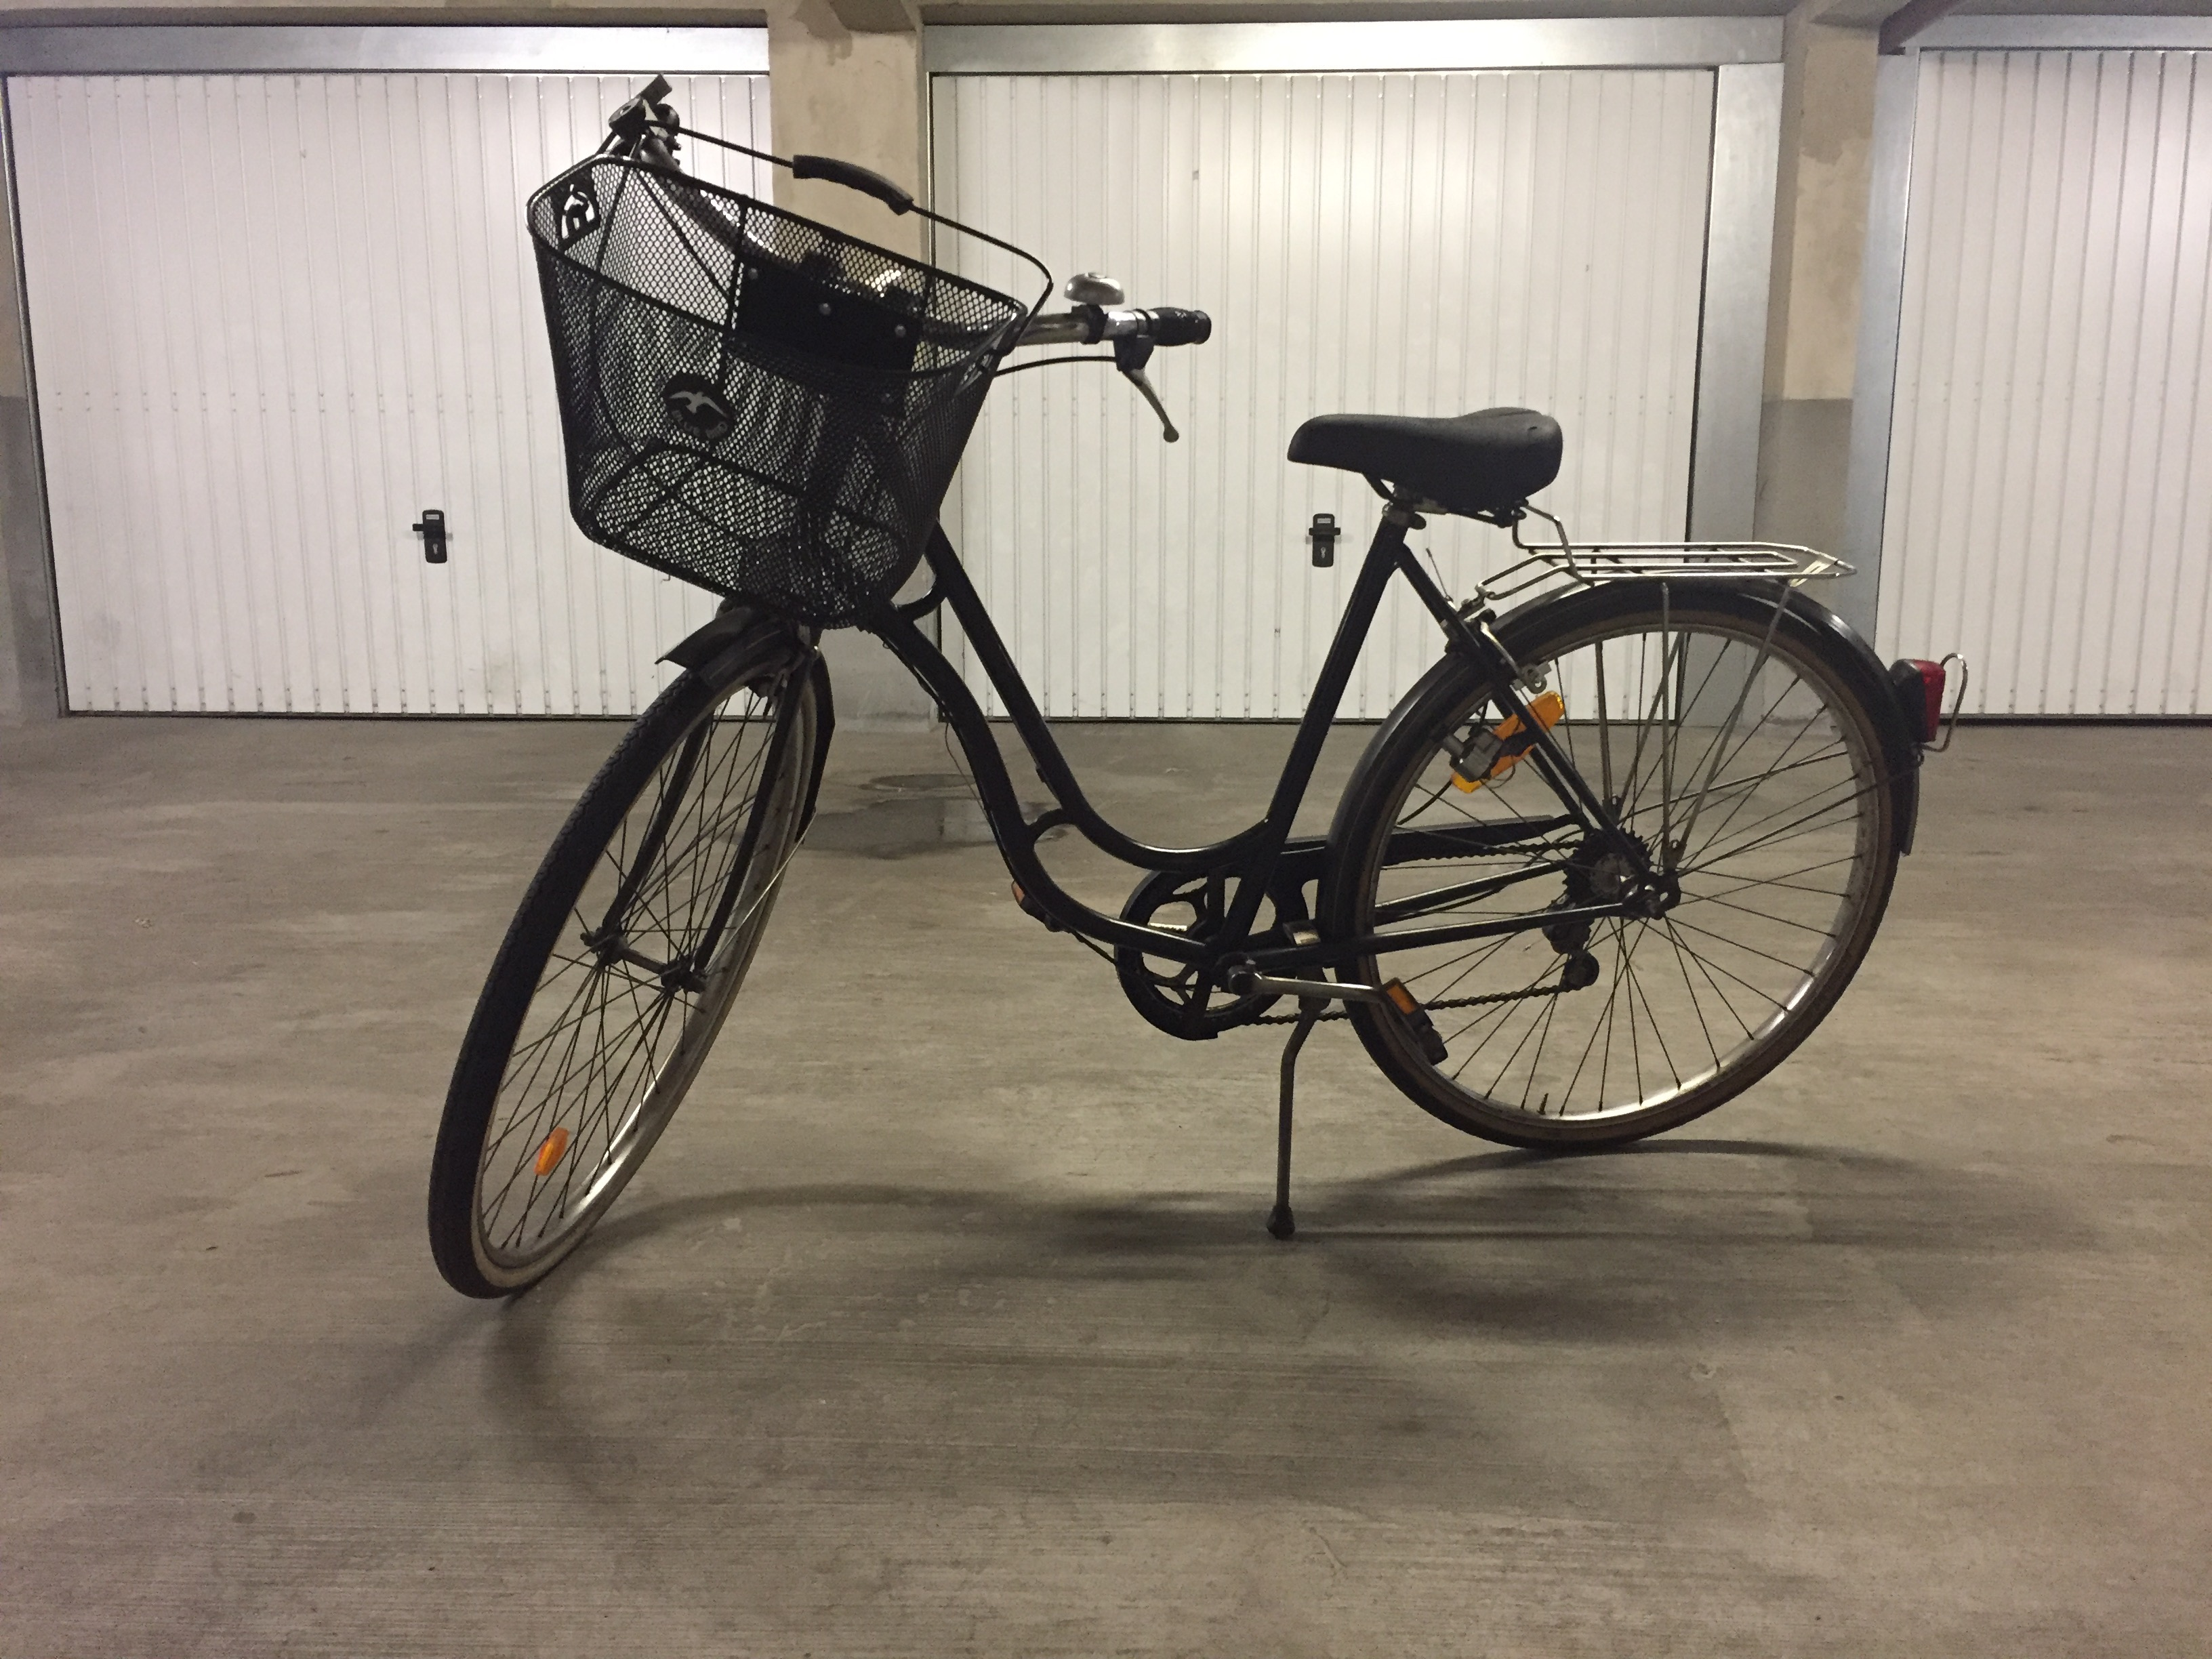 Black bicycle with basket